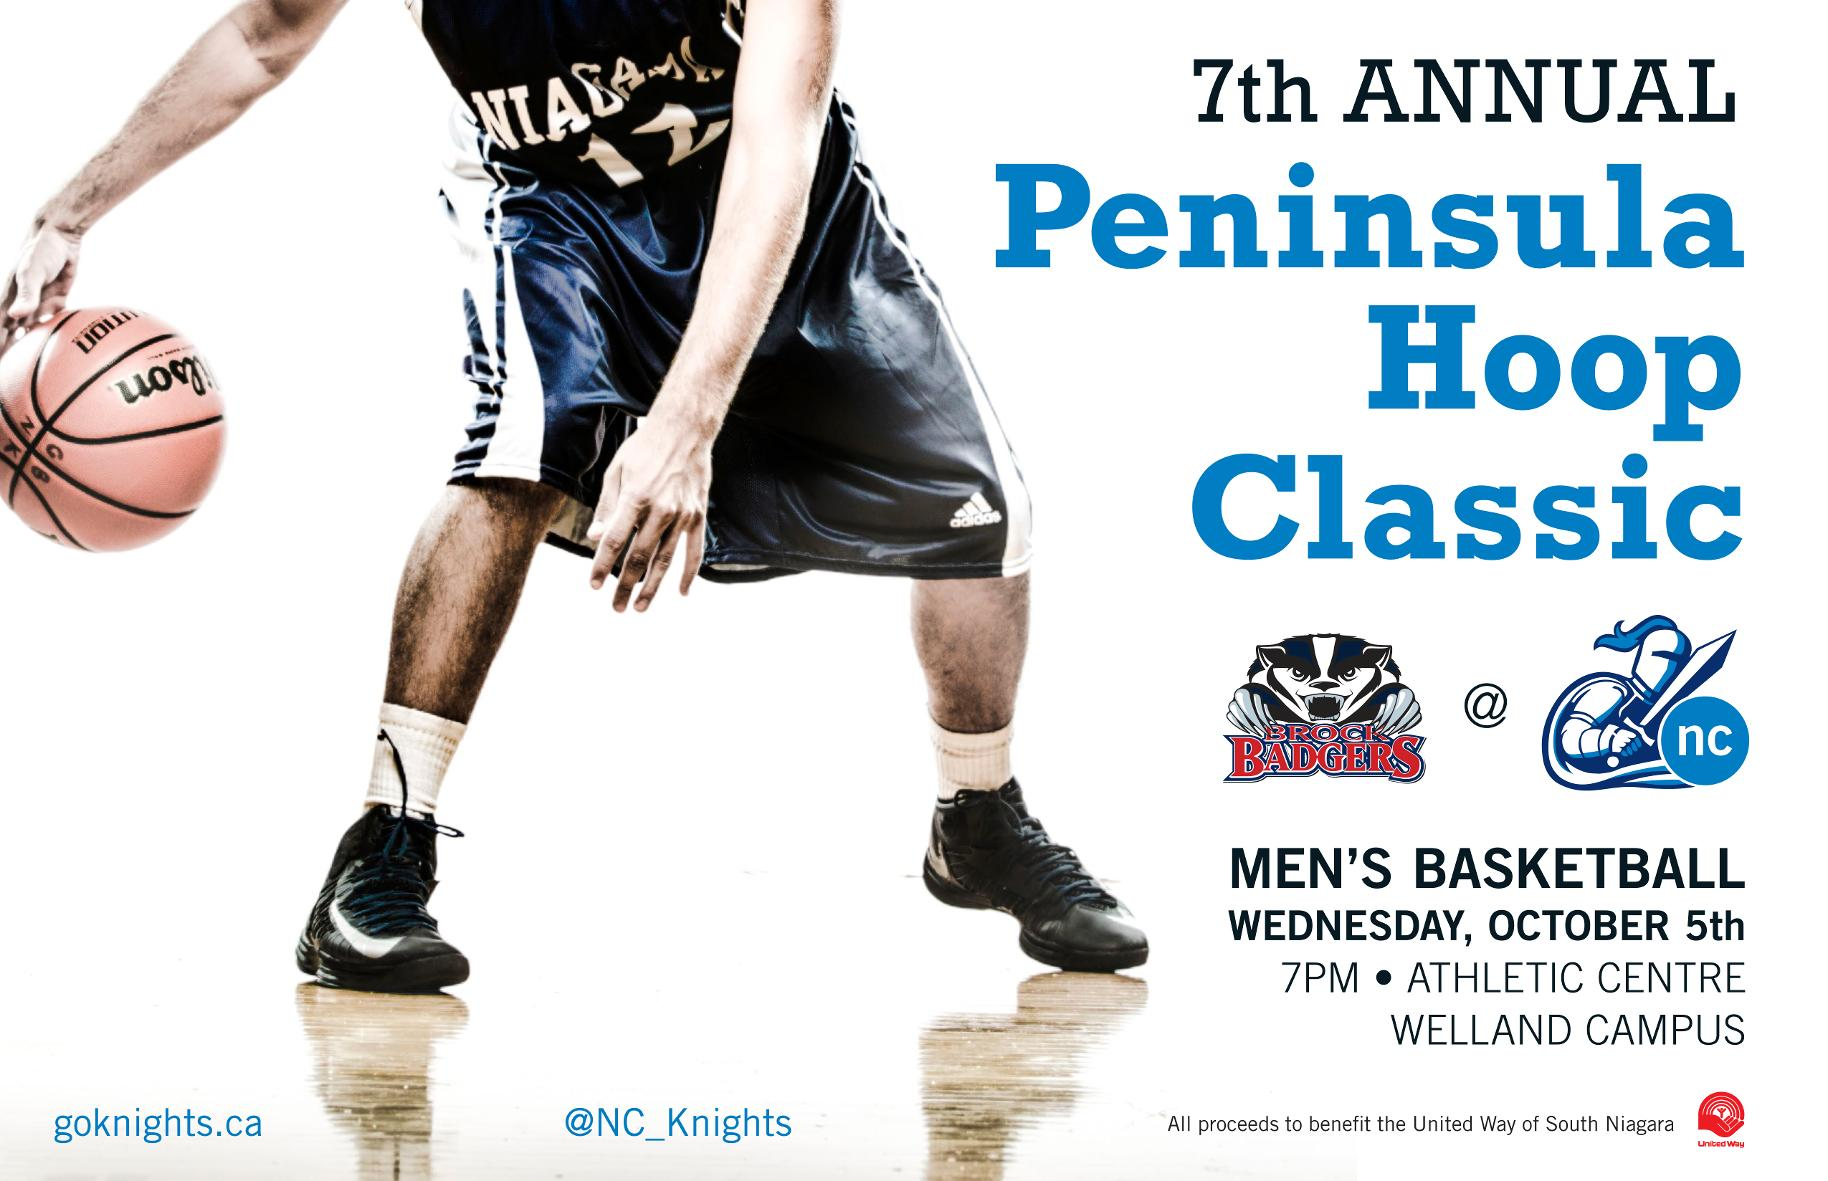 7th Annual Peninsula Hoop Classic comes back to Niagara